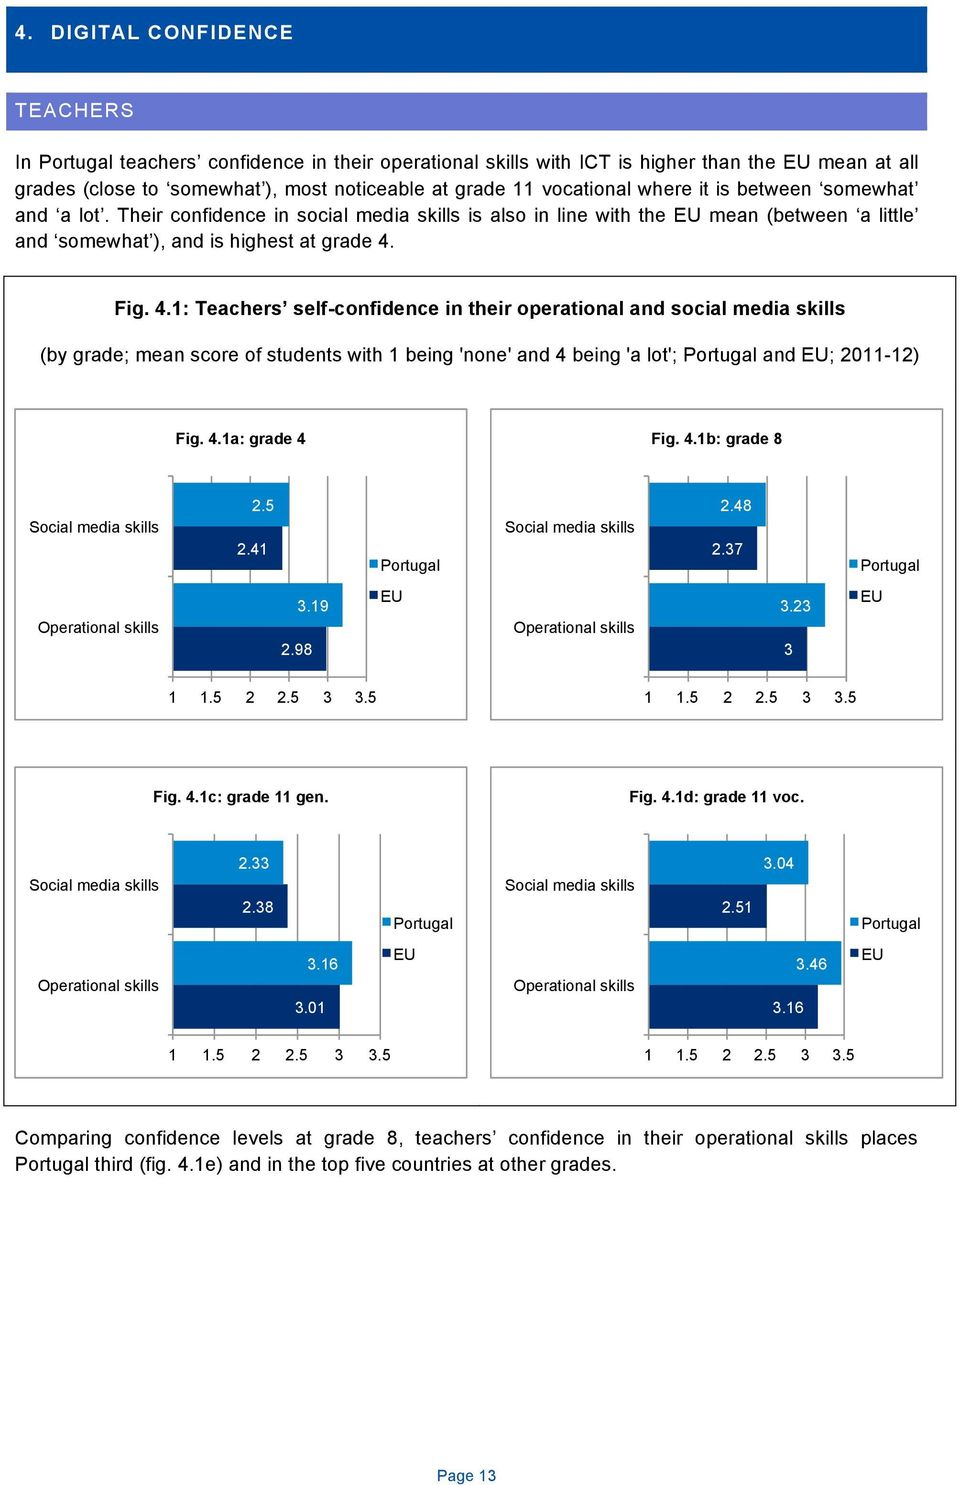 Fig. 4.1: Teachers self-confidence in their operational and social media skills (by grade; mean score of students with 1 being 'none' and 4 being 'a lot'; and ; 2011-12) Fig. 4.1a: grade 4 Fig. 4.1b: grade 8 Social media skills 2.